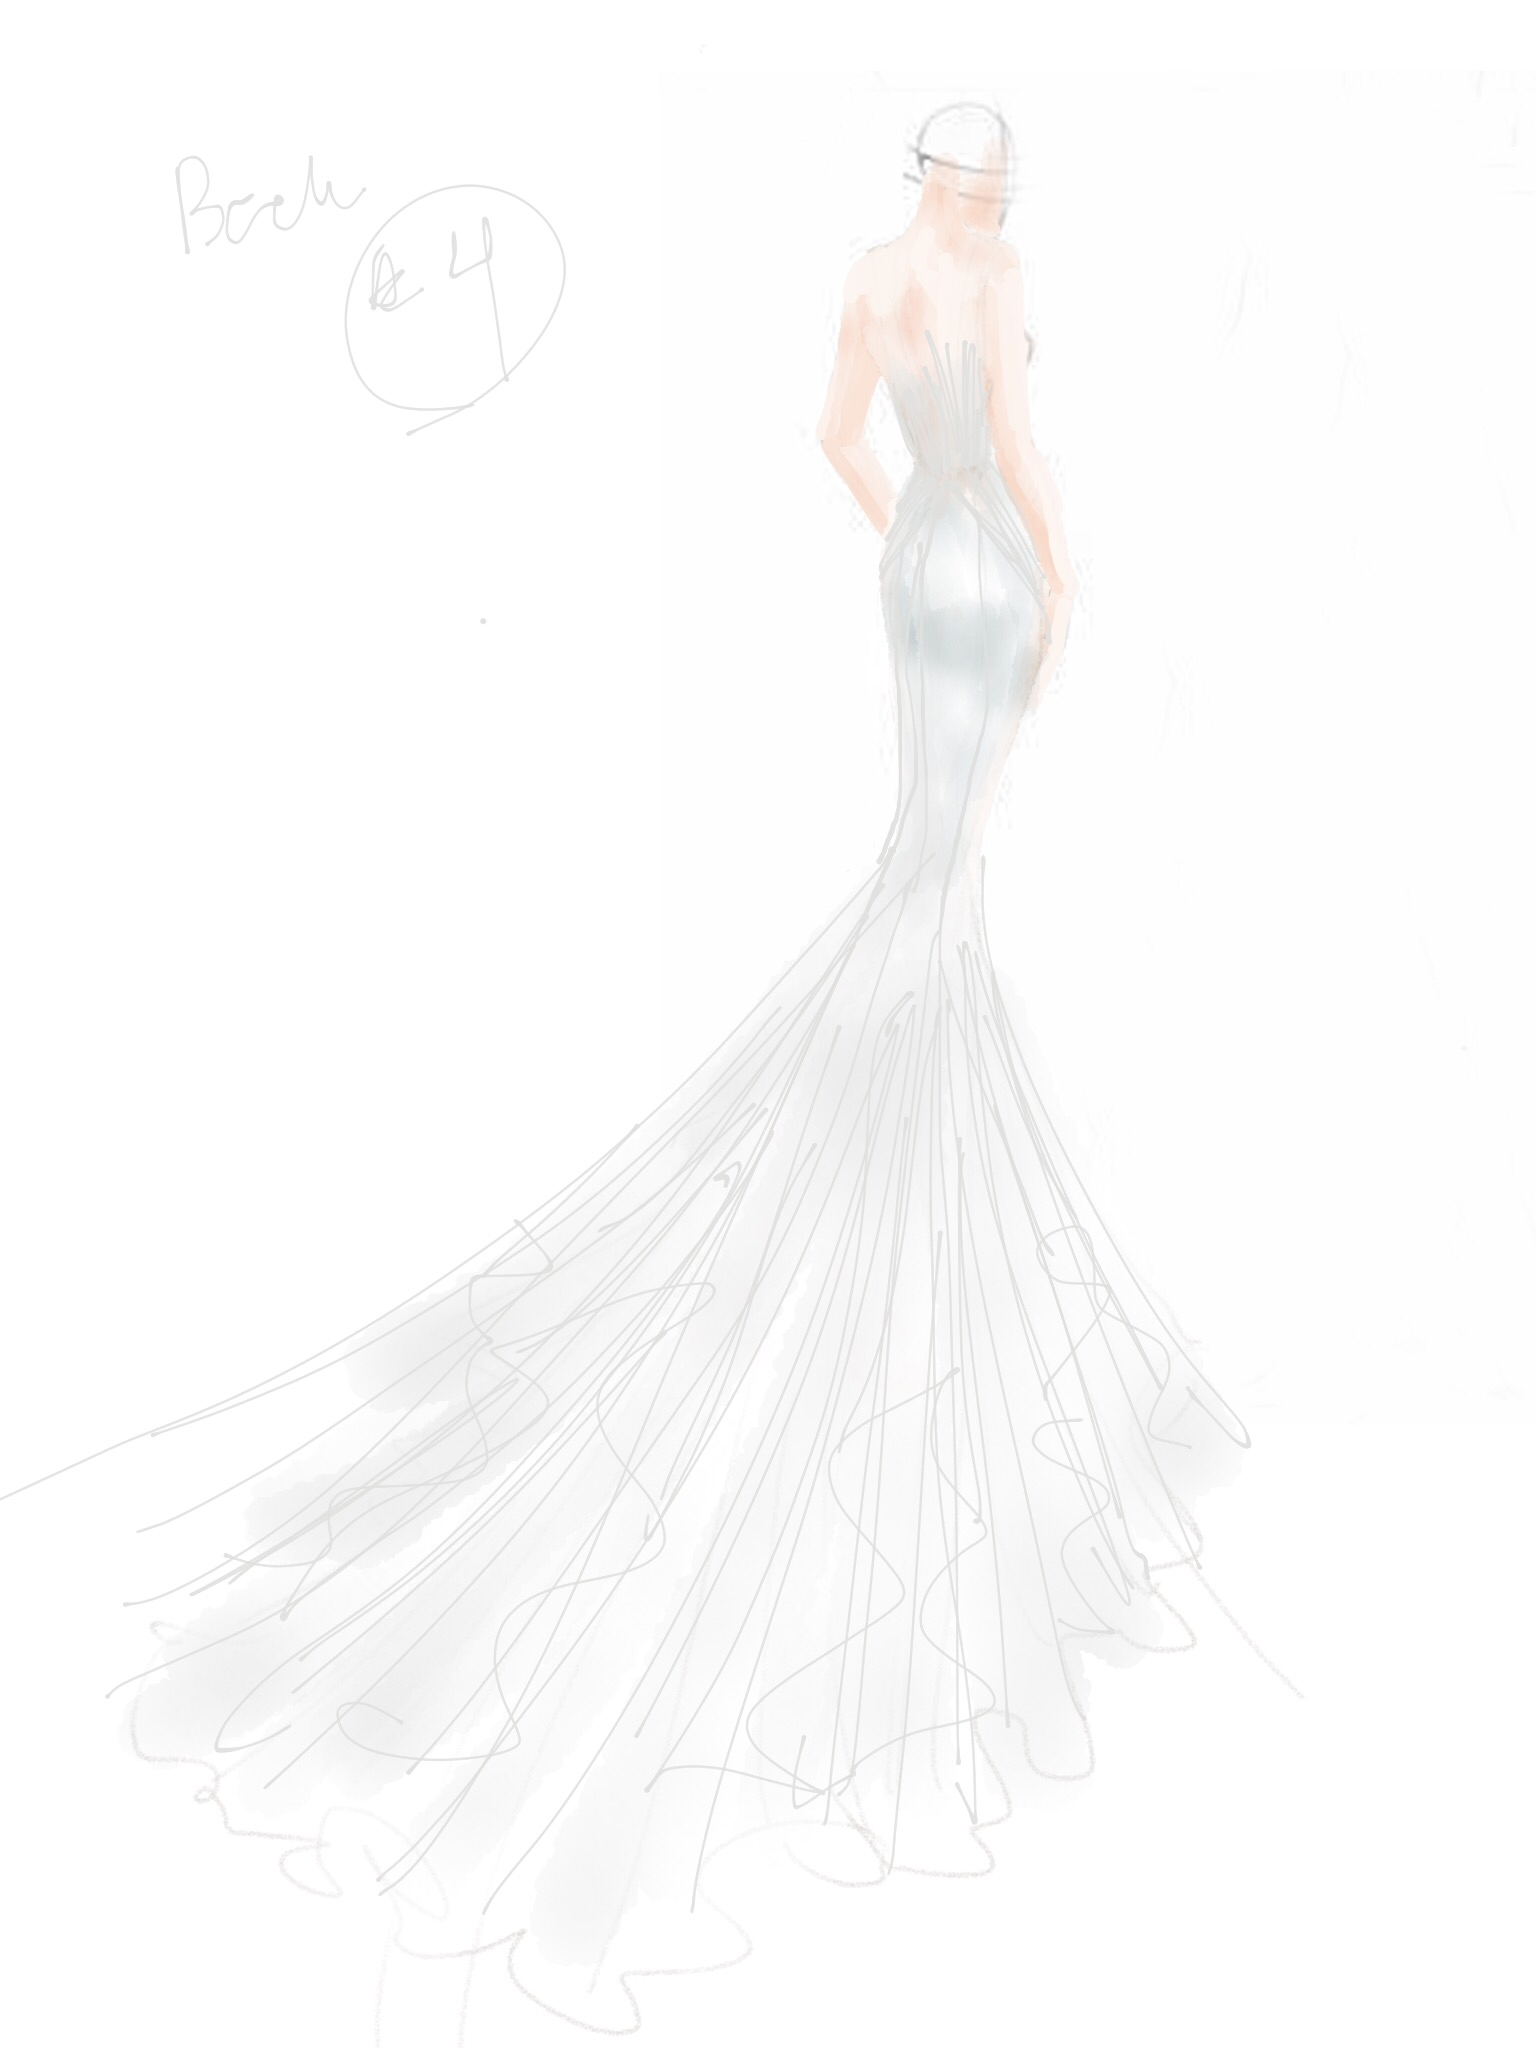 Custom wedding gown sketch new york designer, 4 29 20 PM.png